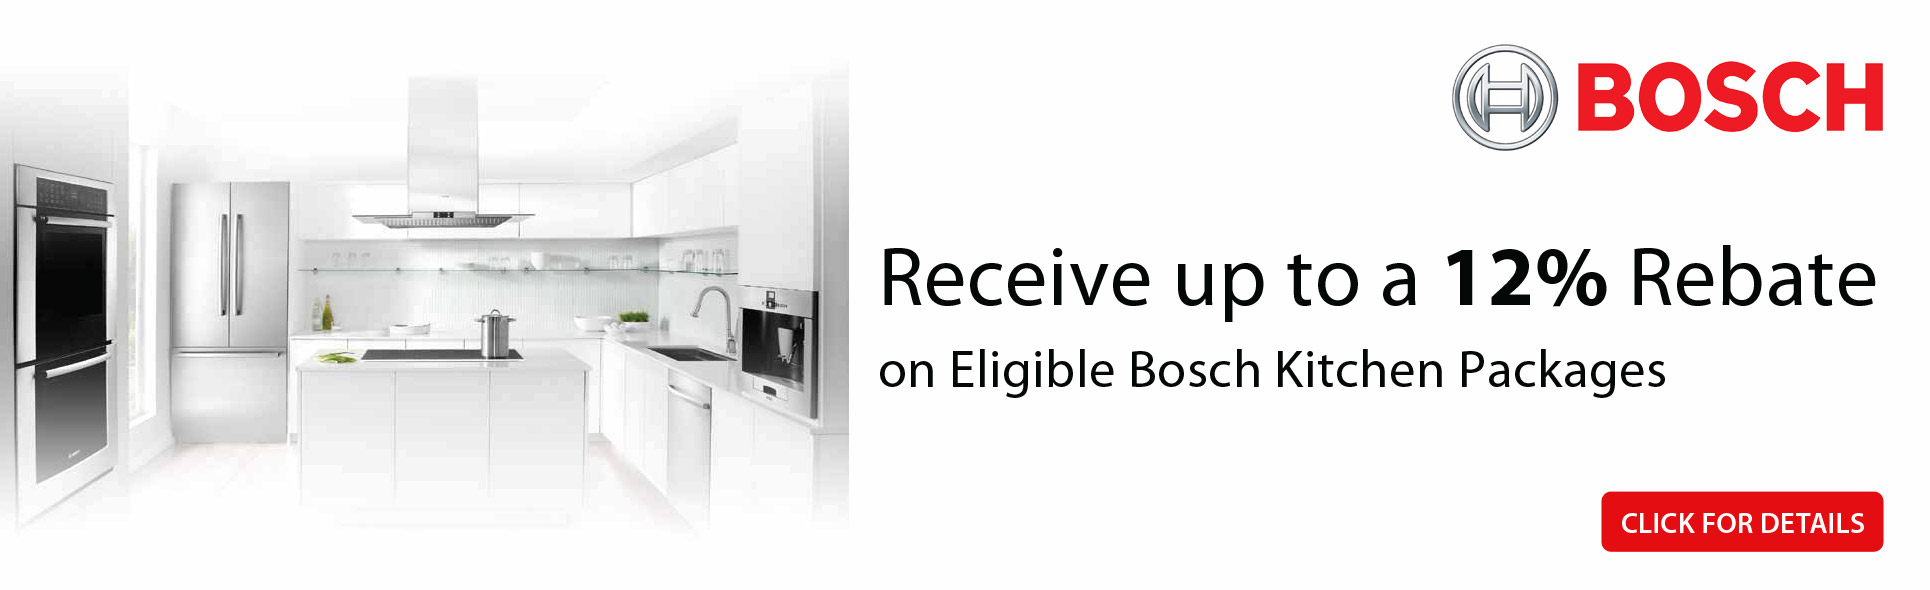 Bosch Kitchen Package Savings- Save up to 12%